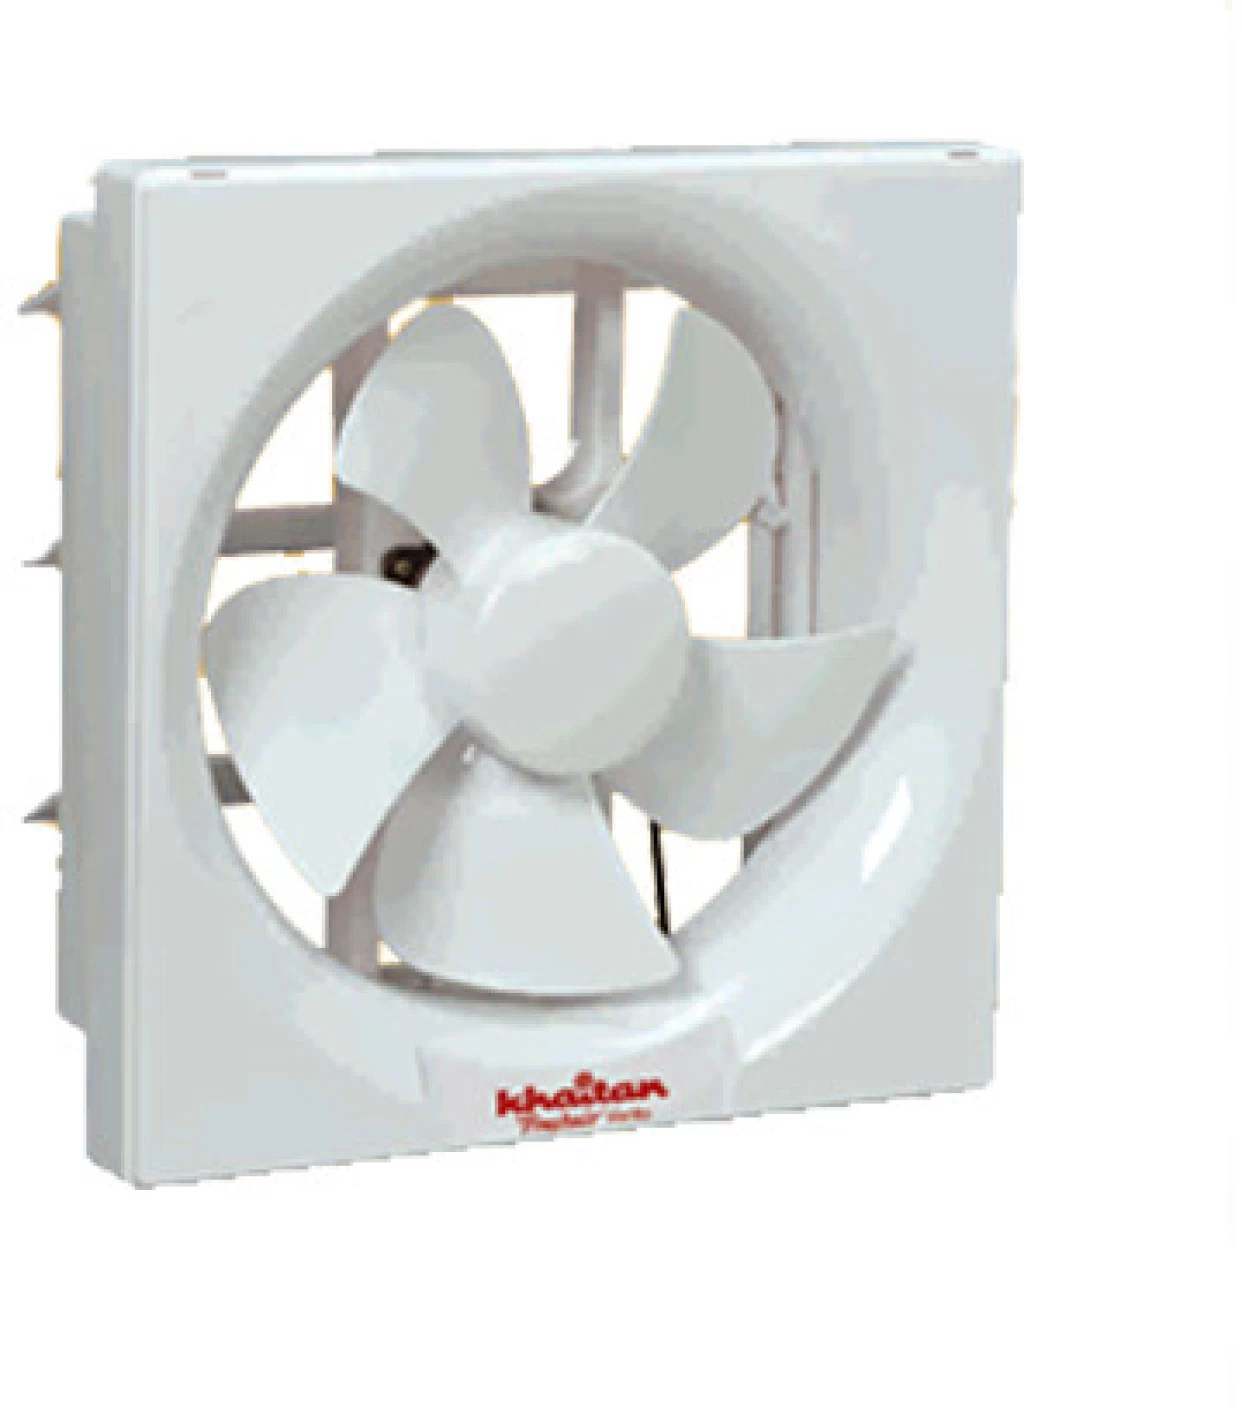 types of kitchen exhaust fans dog proof trash can khaitan vento 5 blade fan price in india buy